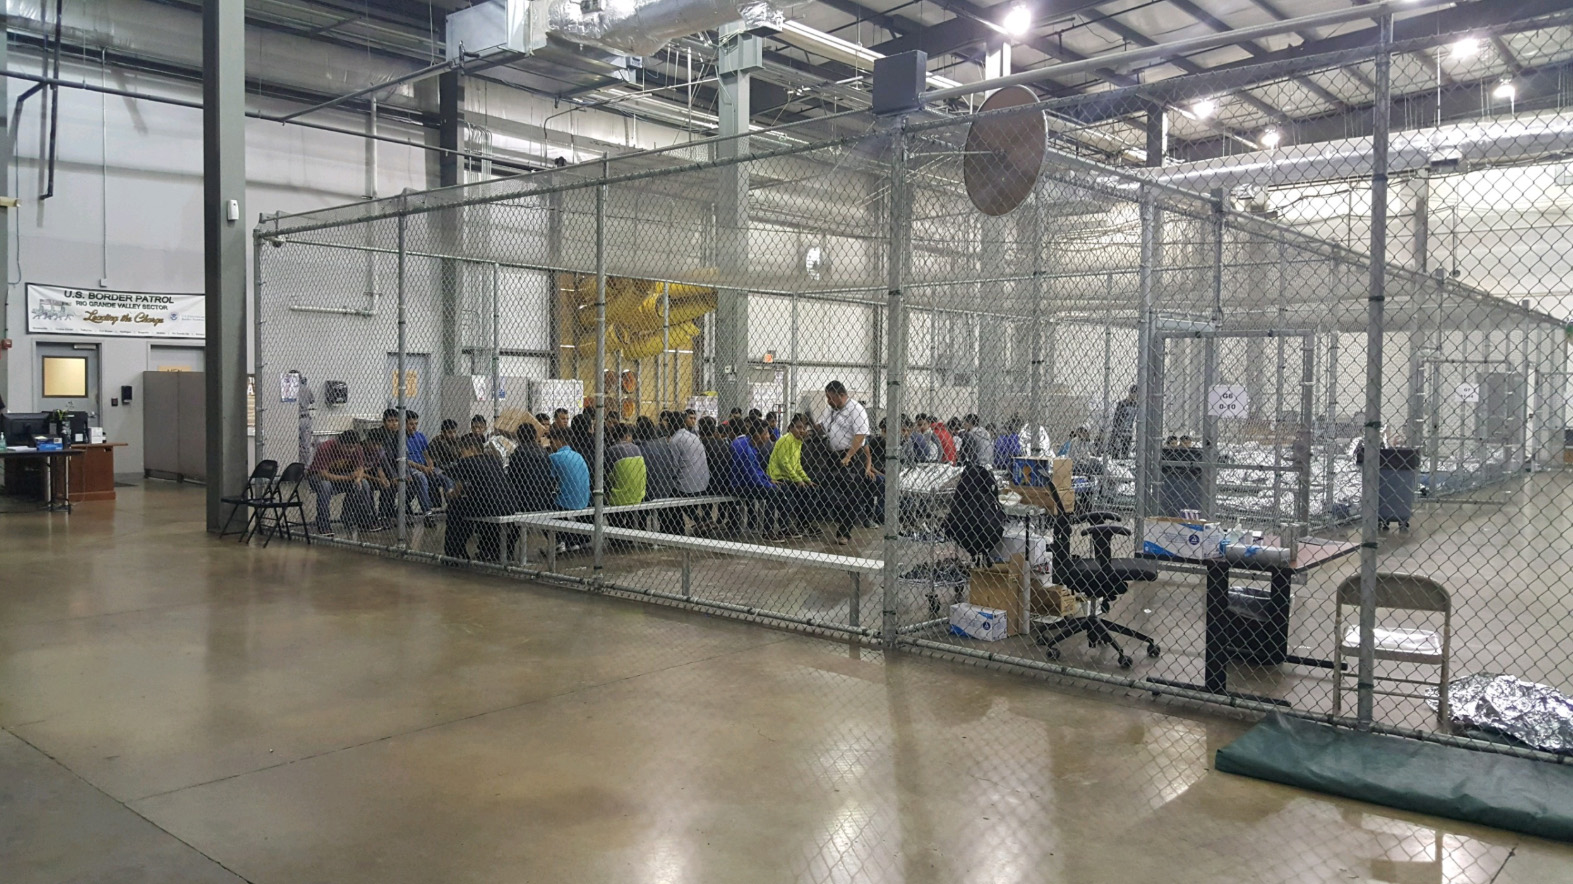 Figure 1. Detention facility in McAllen, Texas, June 17, 2019. Photograph by U.S. Customs and Border Protection via Wikimedia Commons.